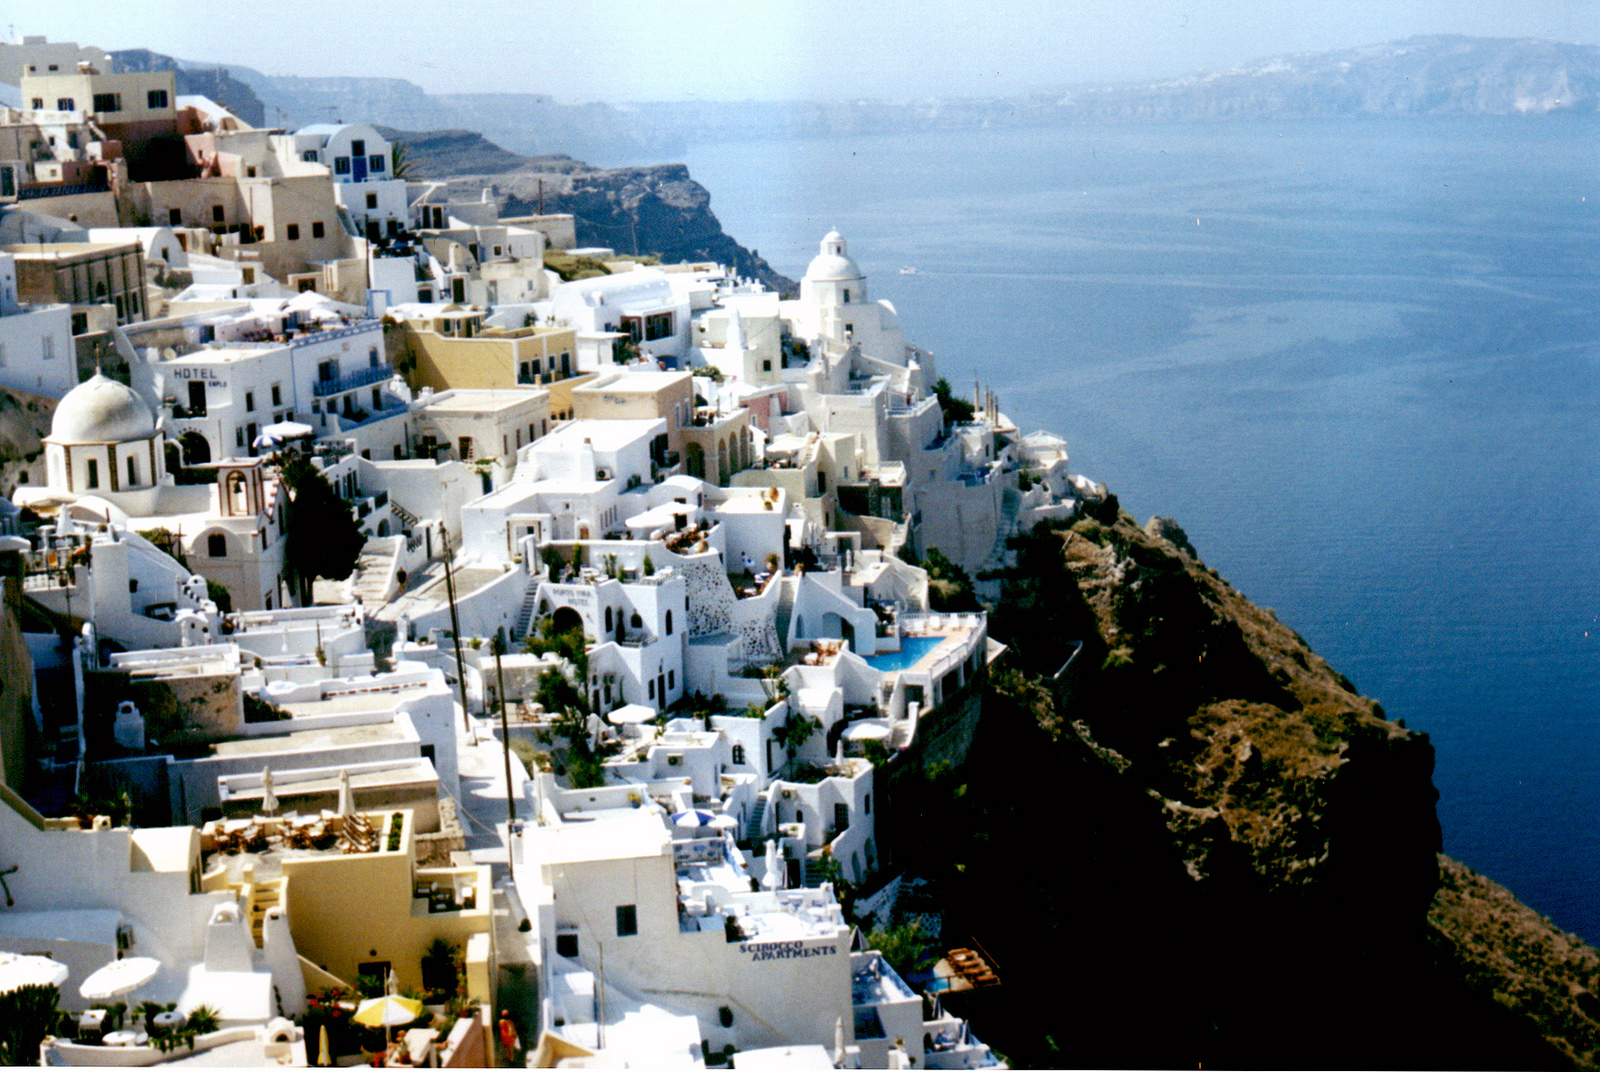 One of the more tantalizing places to plan Greek Family Escapes is in Santorini ... photo by CC user antoniocastagna on Flickr